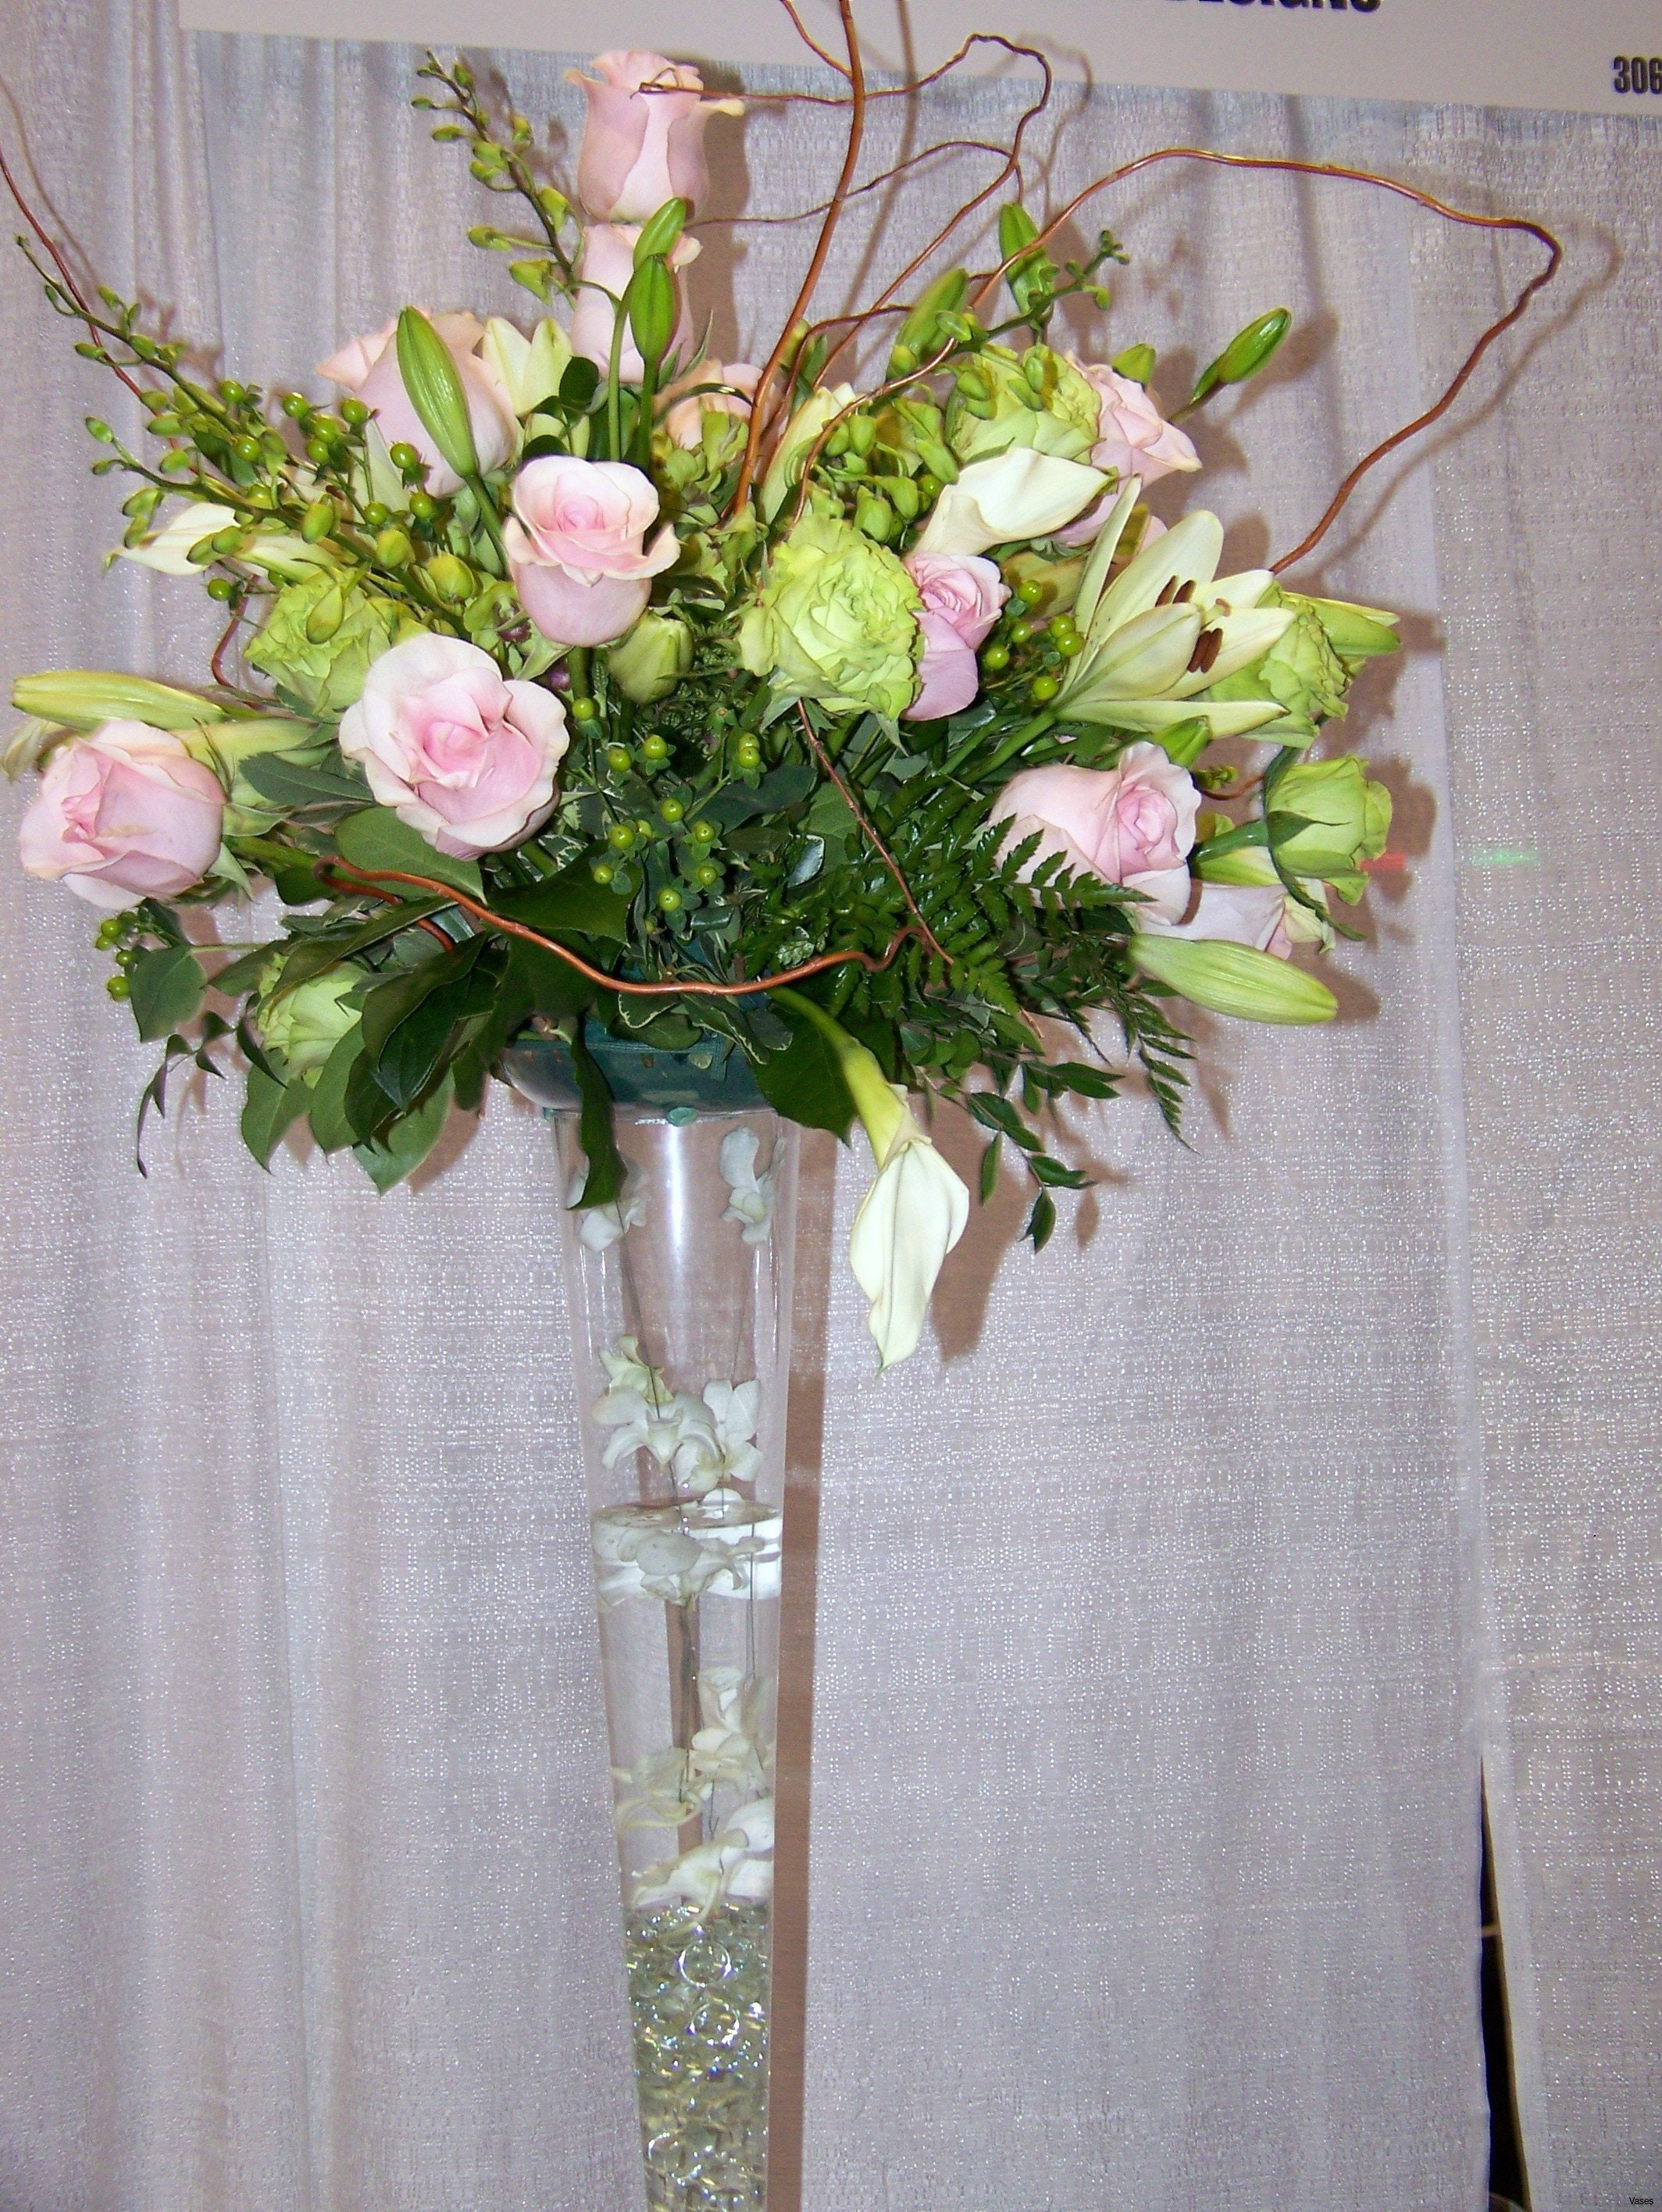 tall vase ideas of vases design ideas artificial flower awesome rose bowl vases h vases throughout vases design ideas artificial flower awesome rose bowl vases h vases ideas for floral arrangements in